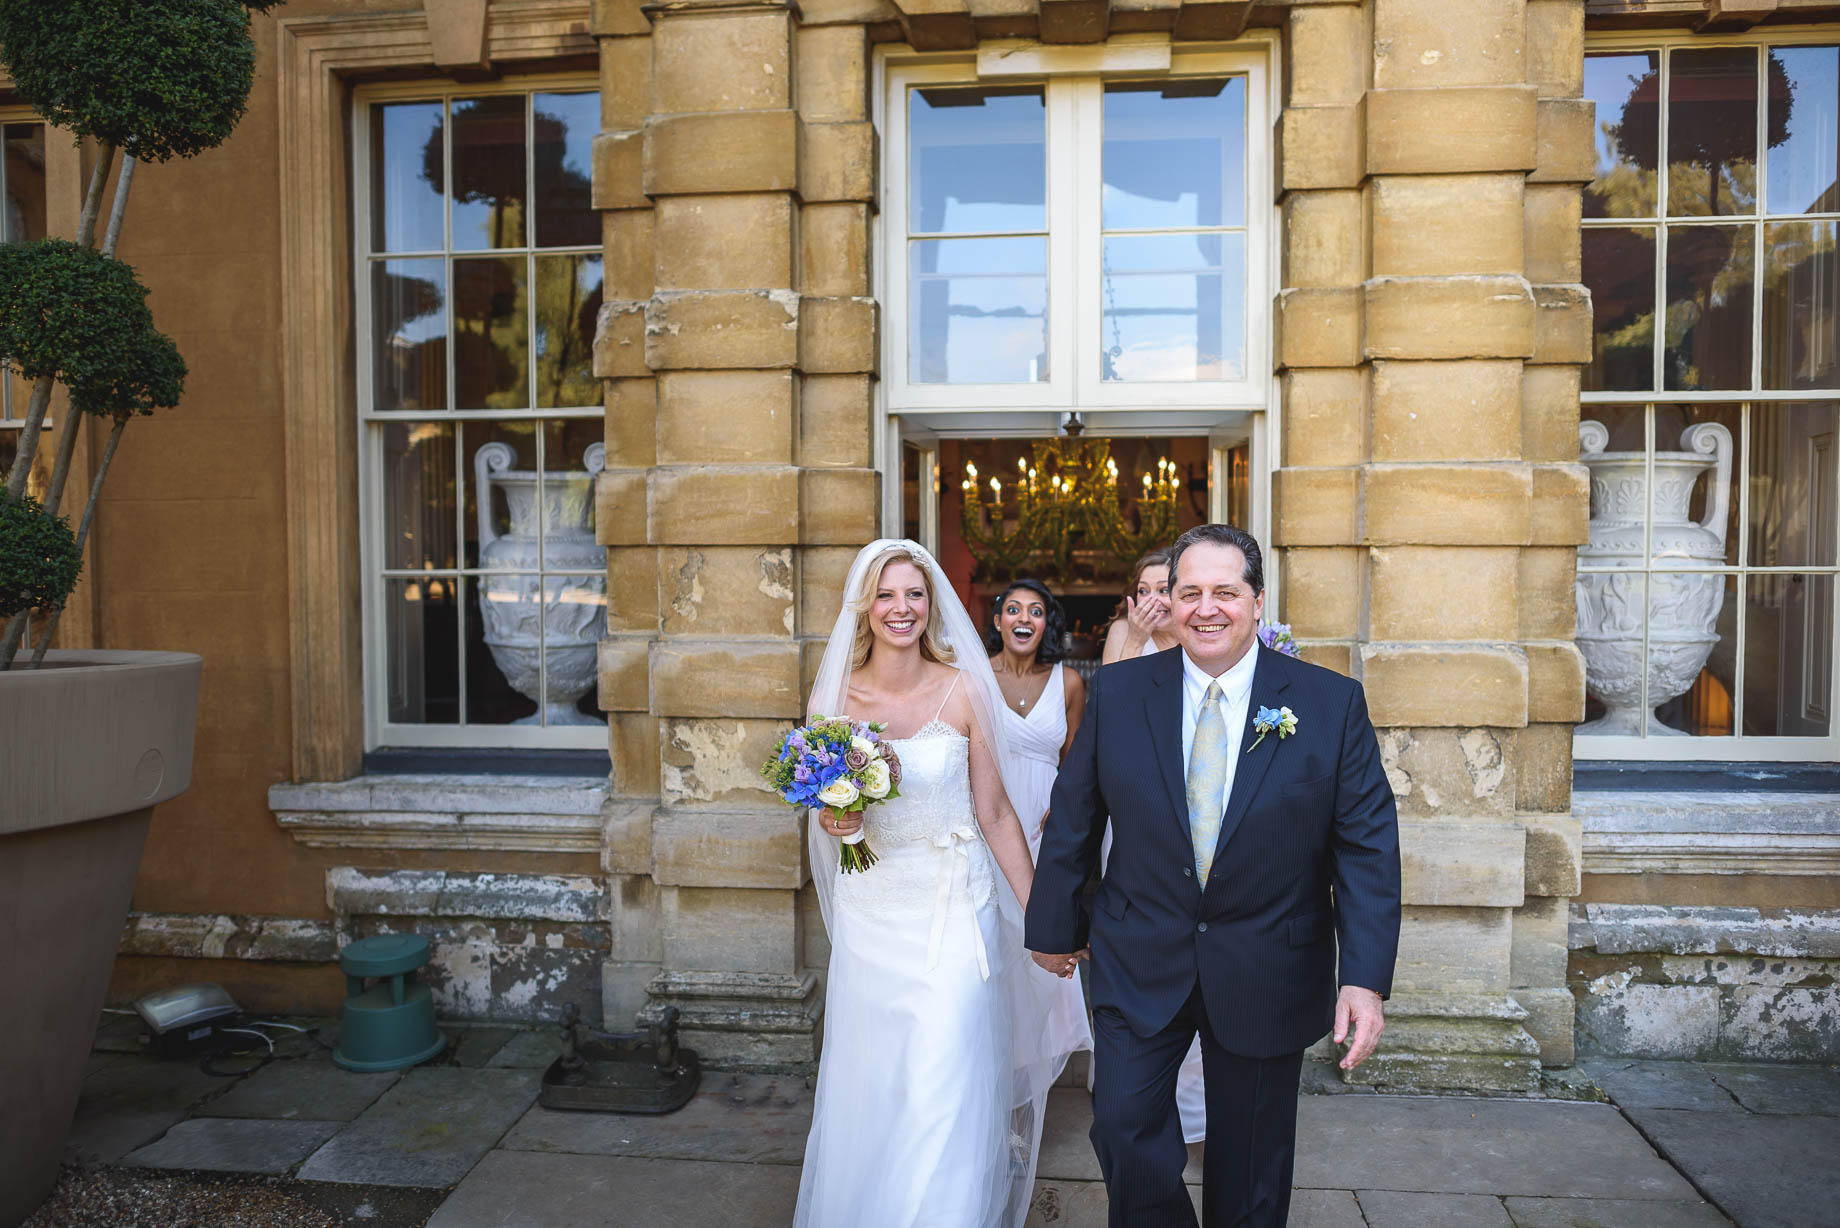 Aynhoe Park wedding photography - Guy Collier - Becky and Nick (91 of 233)